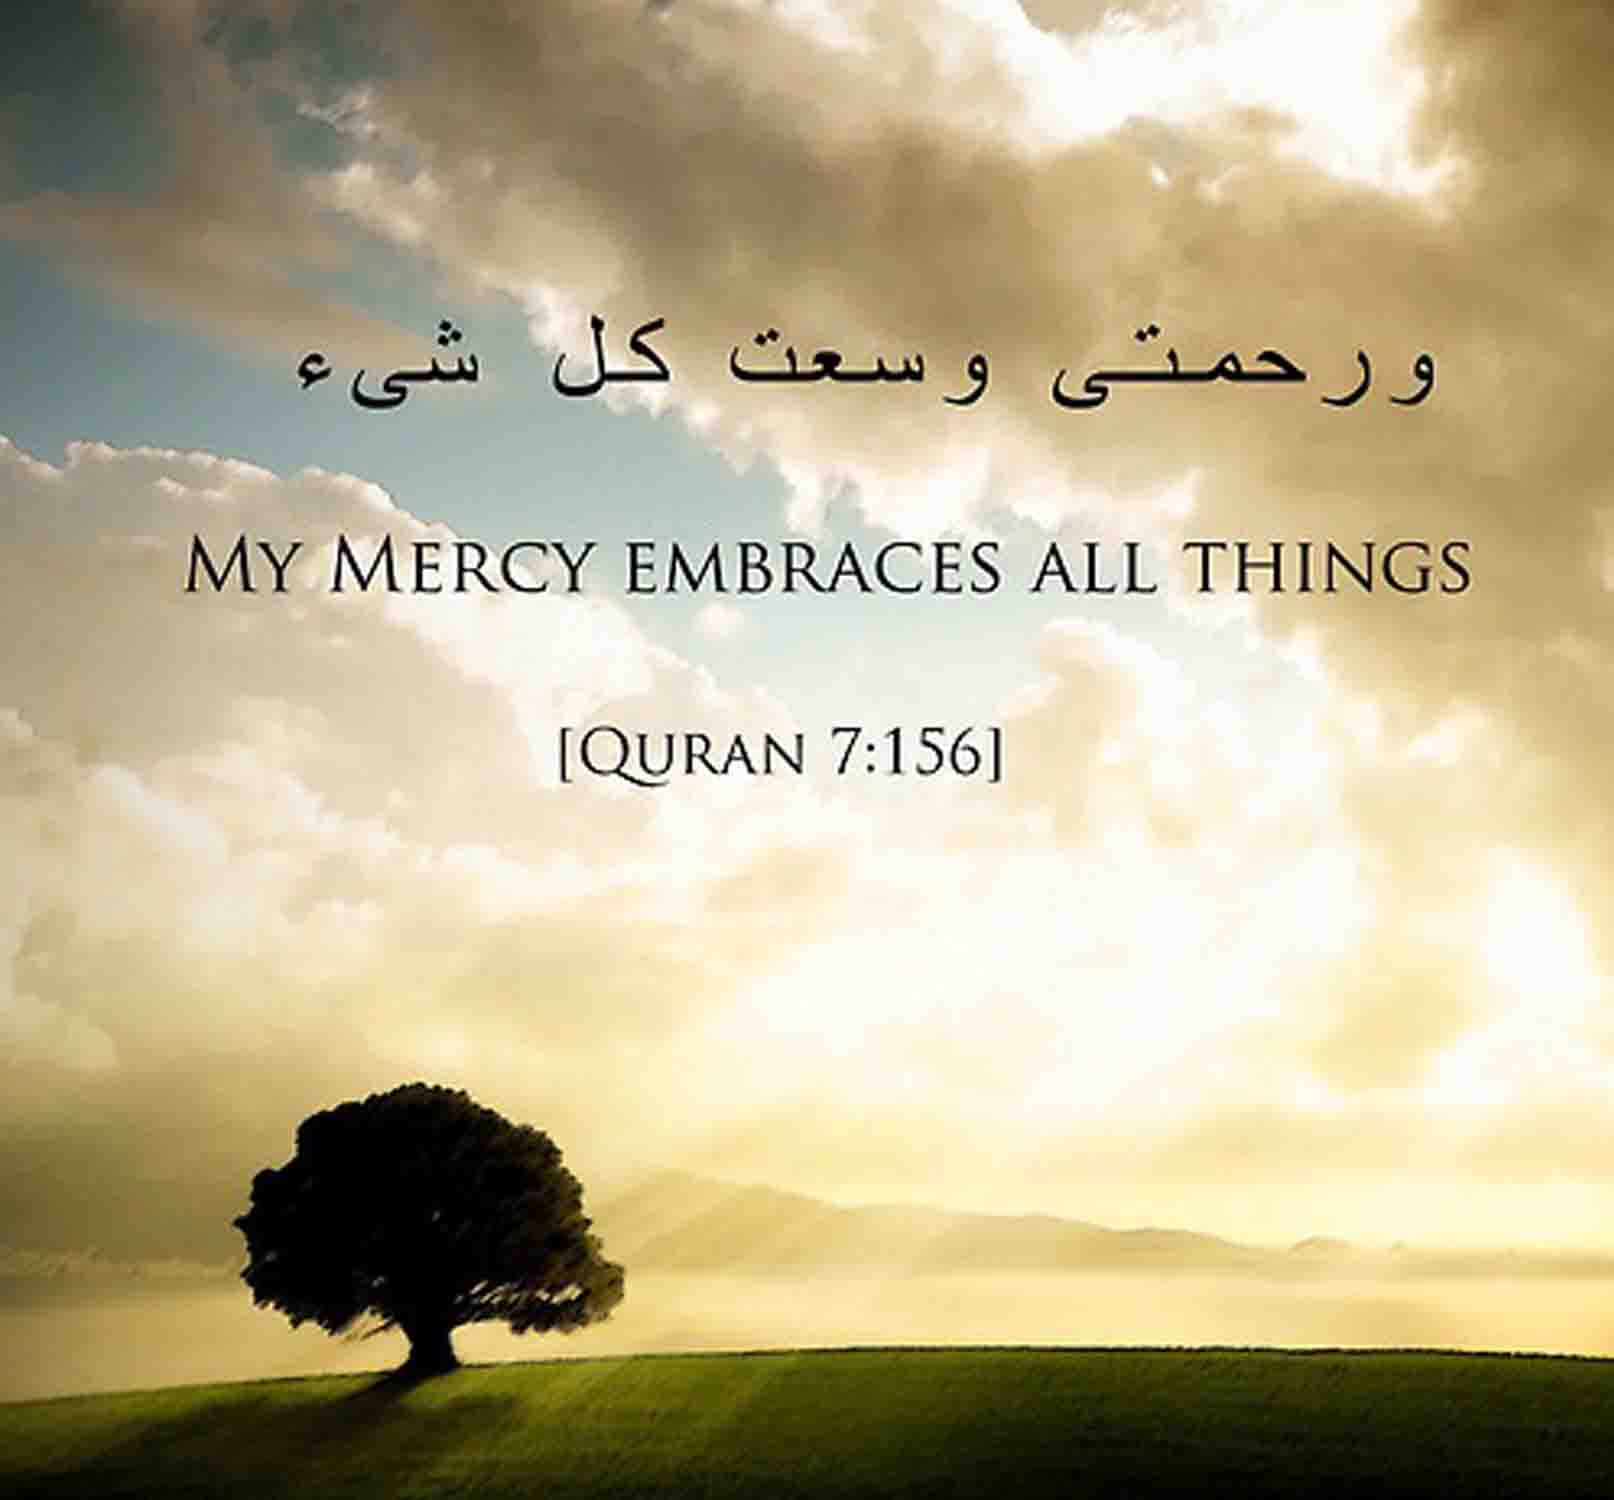 Islamic Quotes Hd Images: Quran Quotes About Peace. QuotesGram